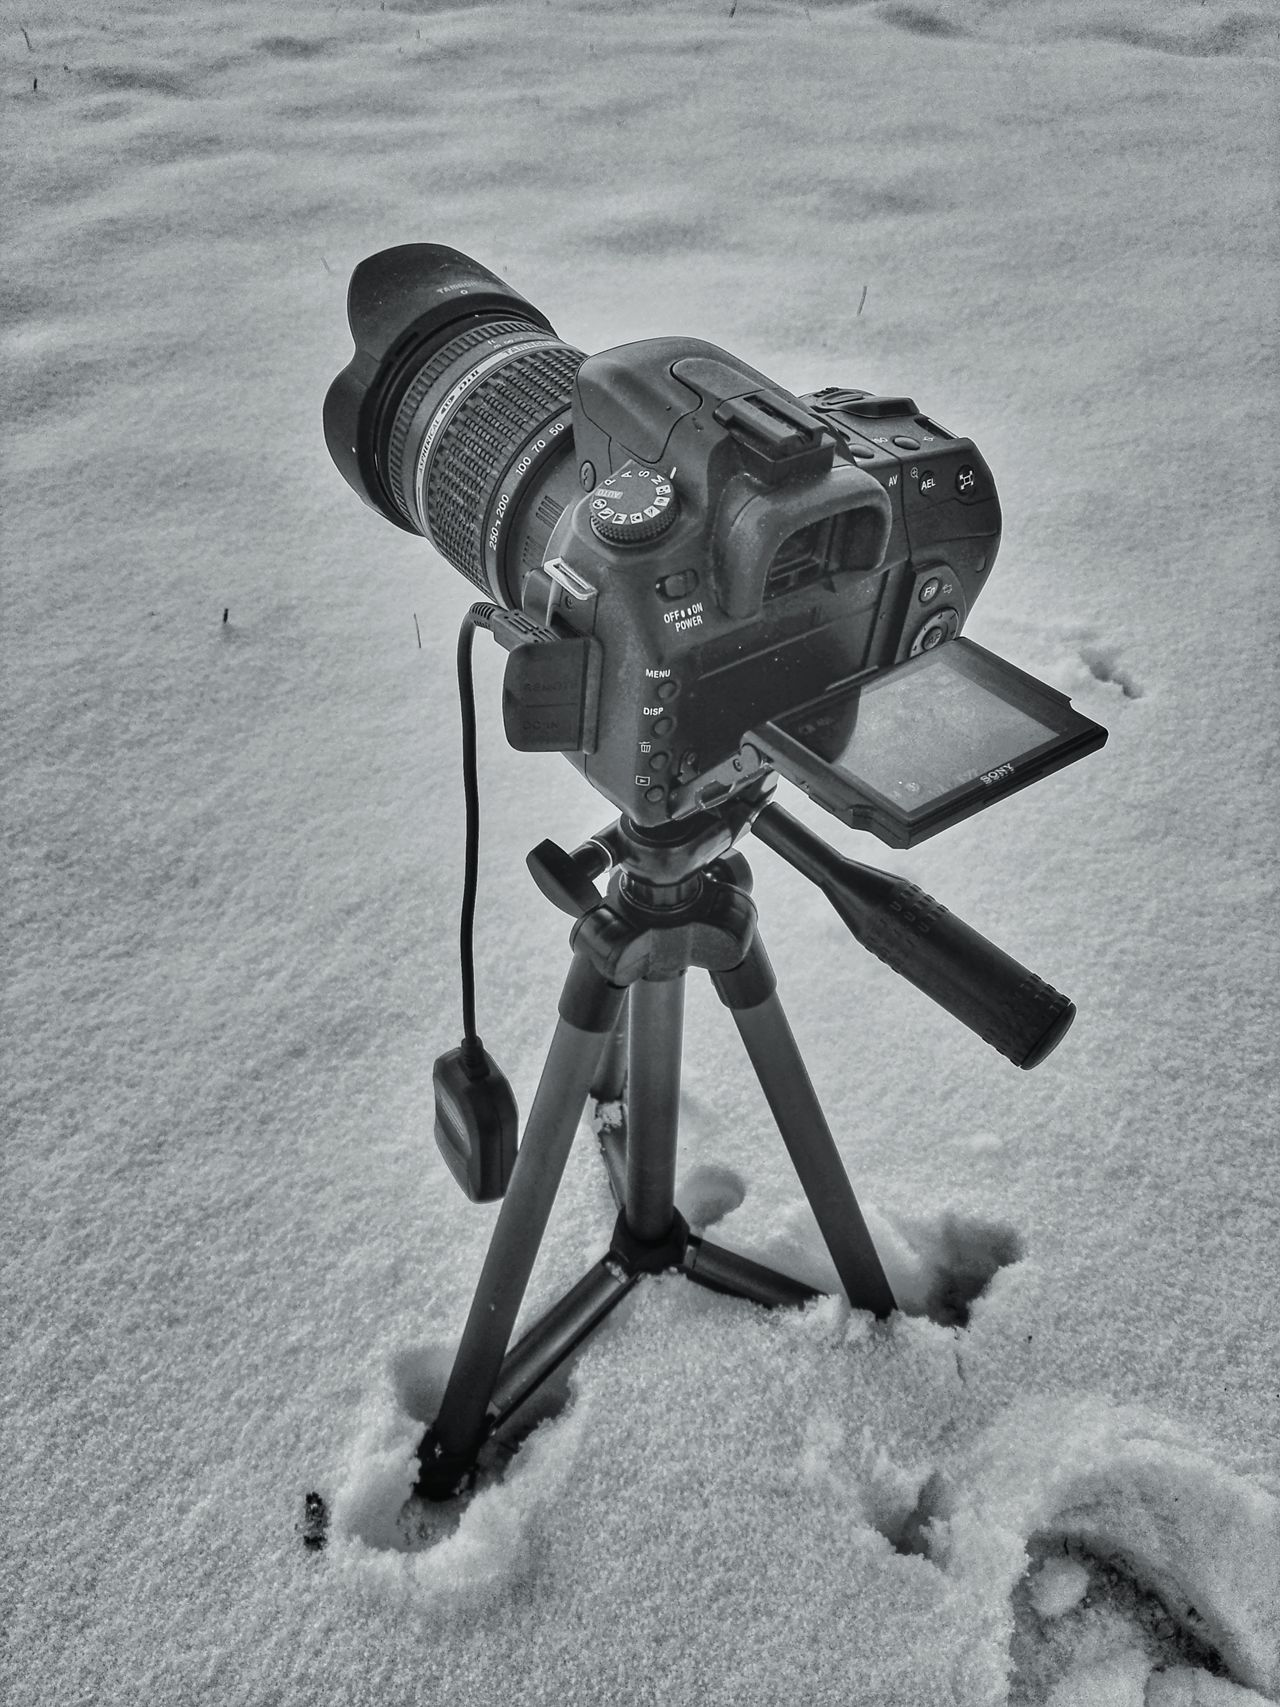 Camera Tripod No People Outdoors Day Snow Winter Wintertime Cold Frozen Sony Sony Alpha Alpha Nature Black And White Blackandwhite